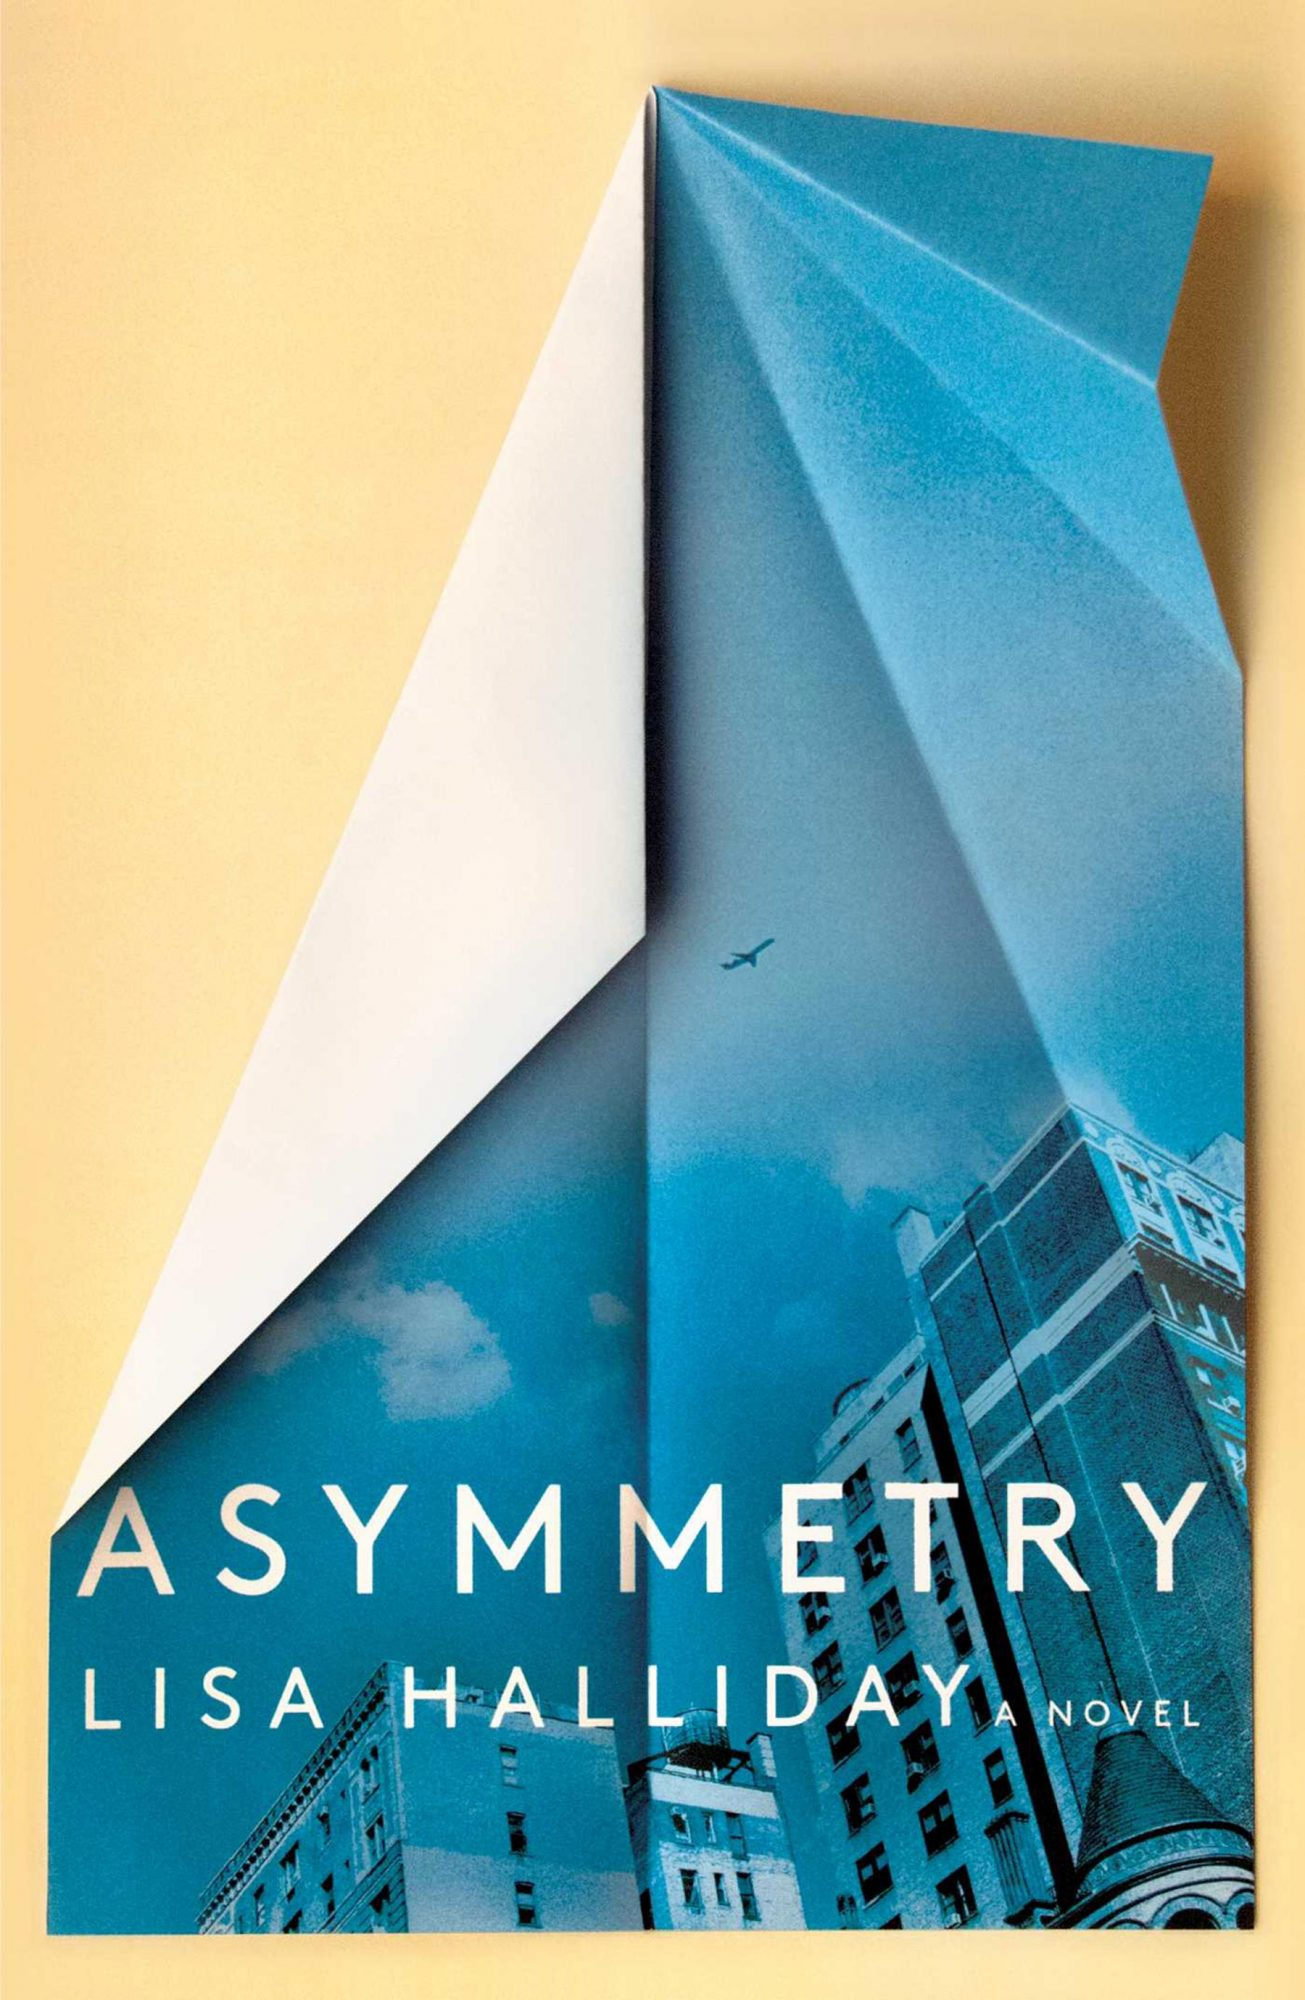 ASYMMETRY2018LISA HALLIDAY